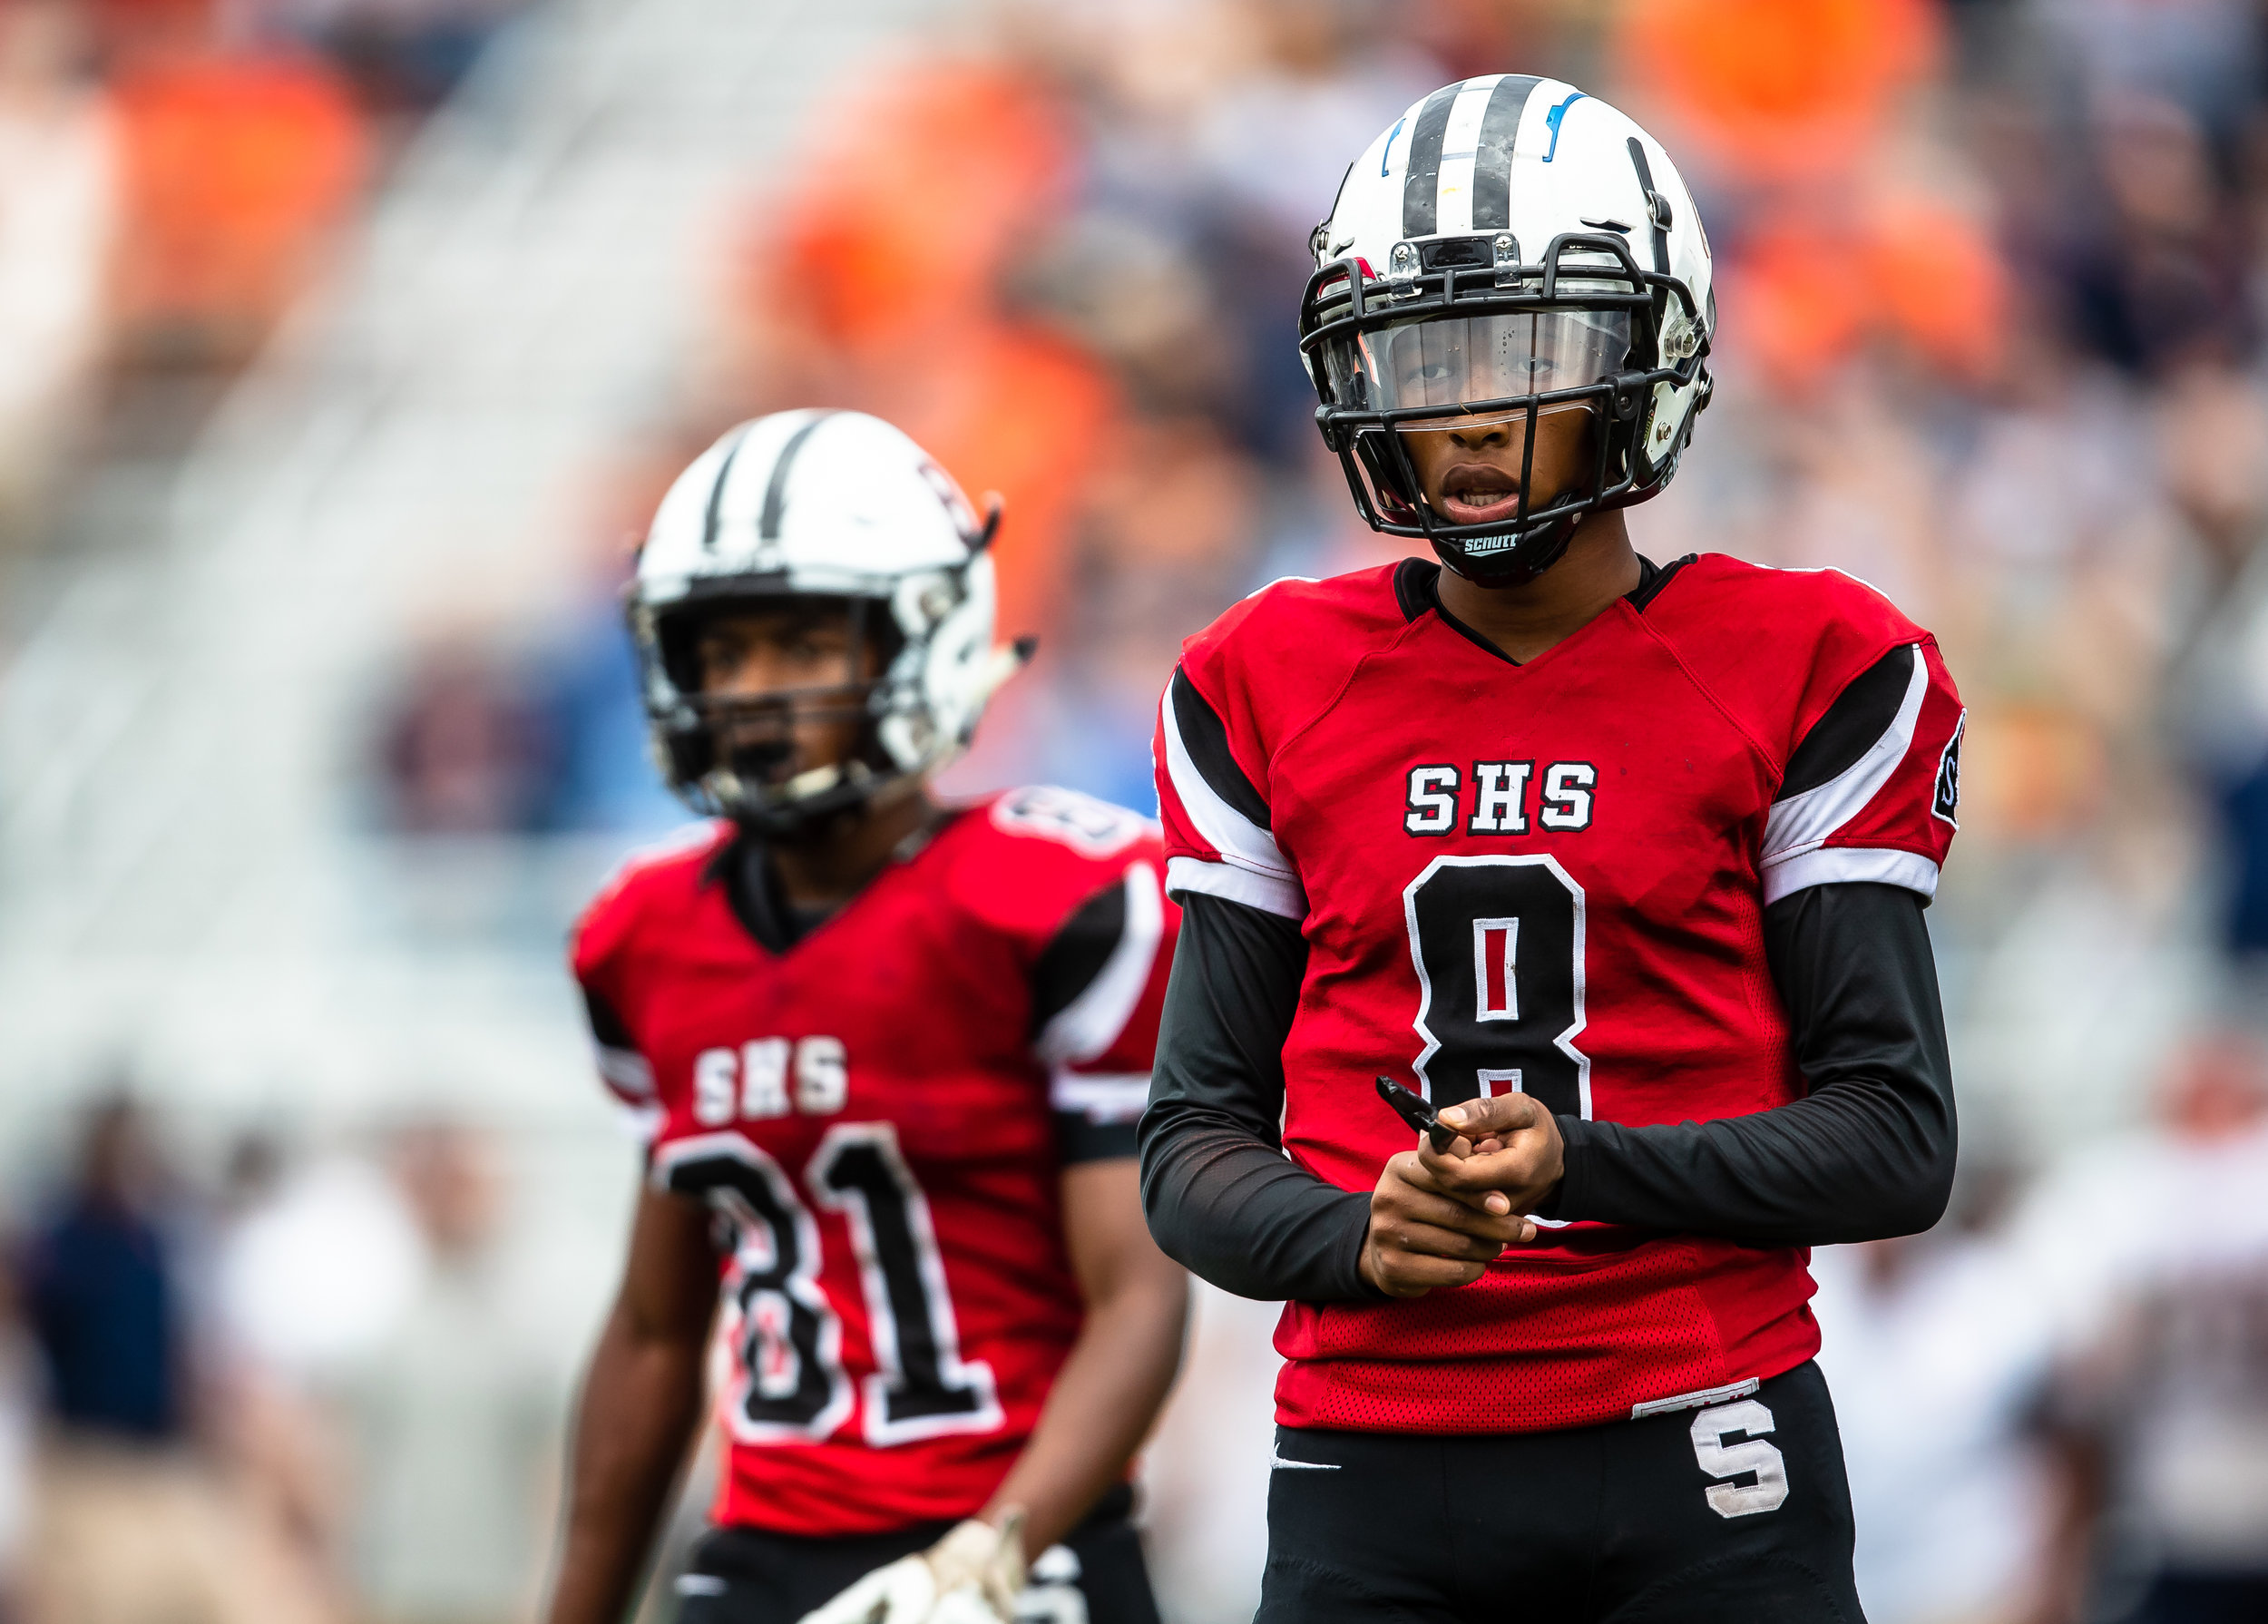 Springfield quarterback Rashad Rochelle (8) gets the play call from the sideline as the Senators take on Rochester in the first half at Memorial Stadium, Saturday, Oct. 6, 2018, in Springfield, Ill. [Justin L. Fowler/The State Journal-Register]